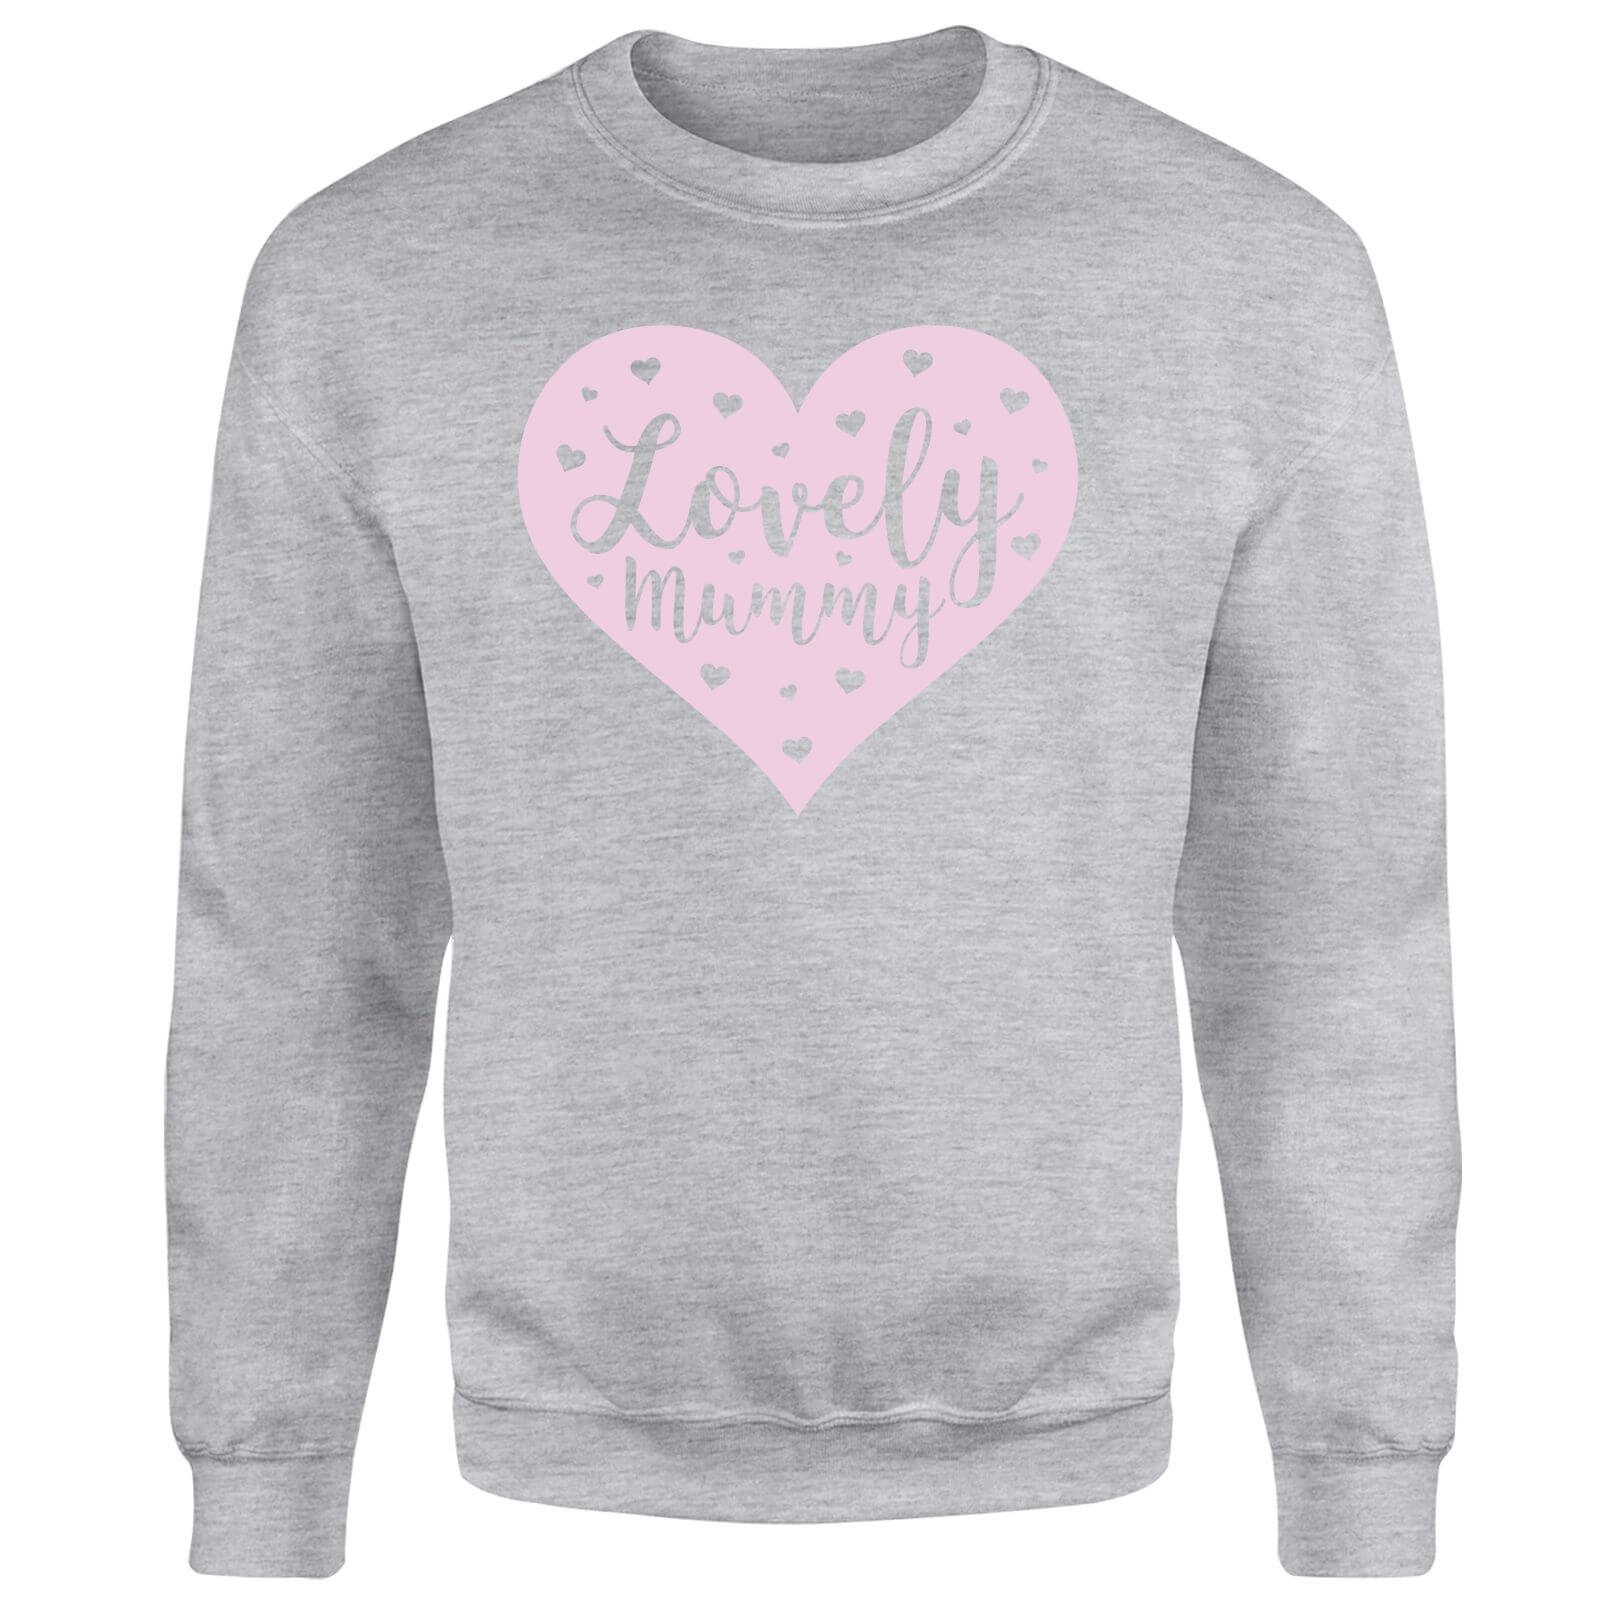 Lovely Mummy Sweatshirt - Grey